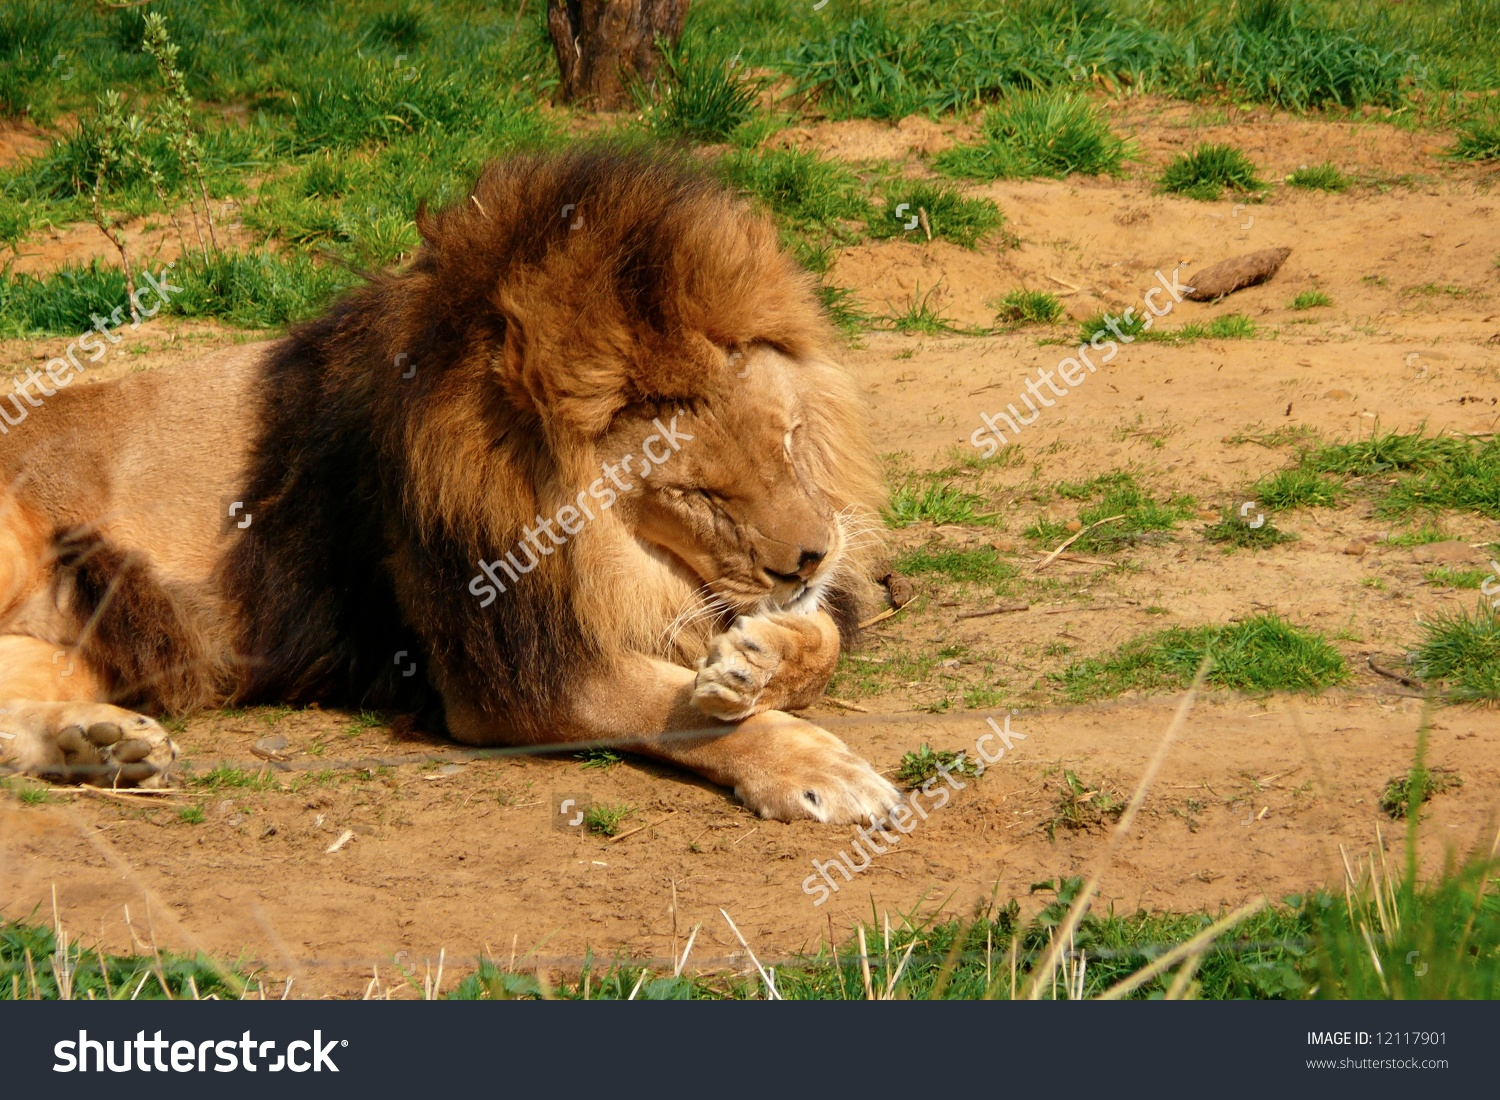 A Lion Cleaning Itself By Licking His Paws. Stock Photo 12117901.